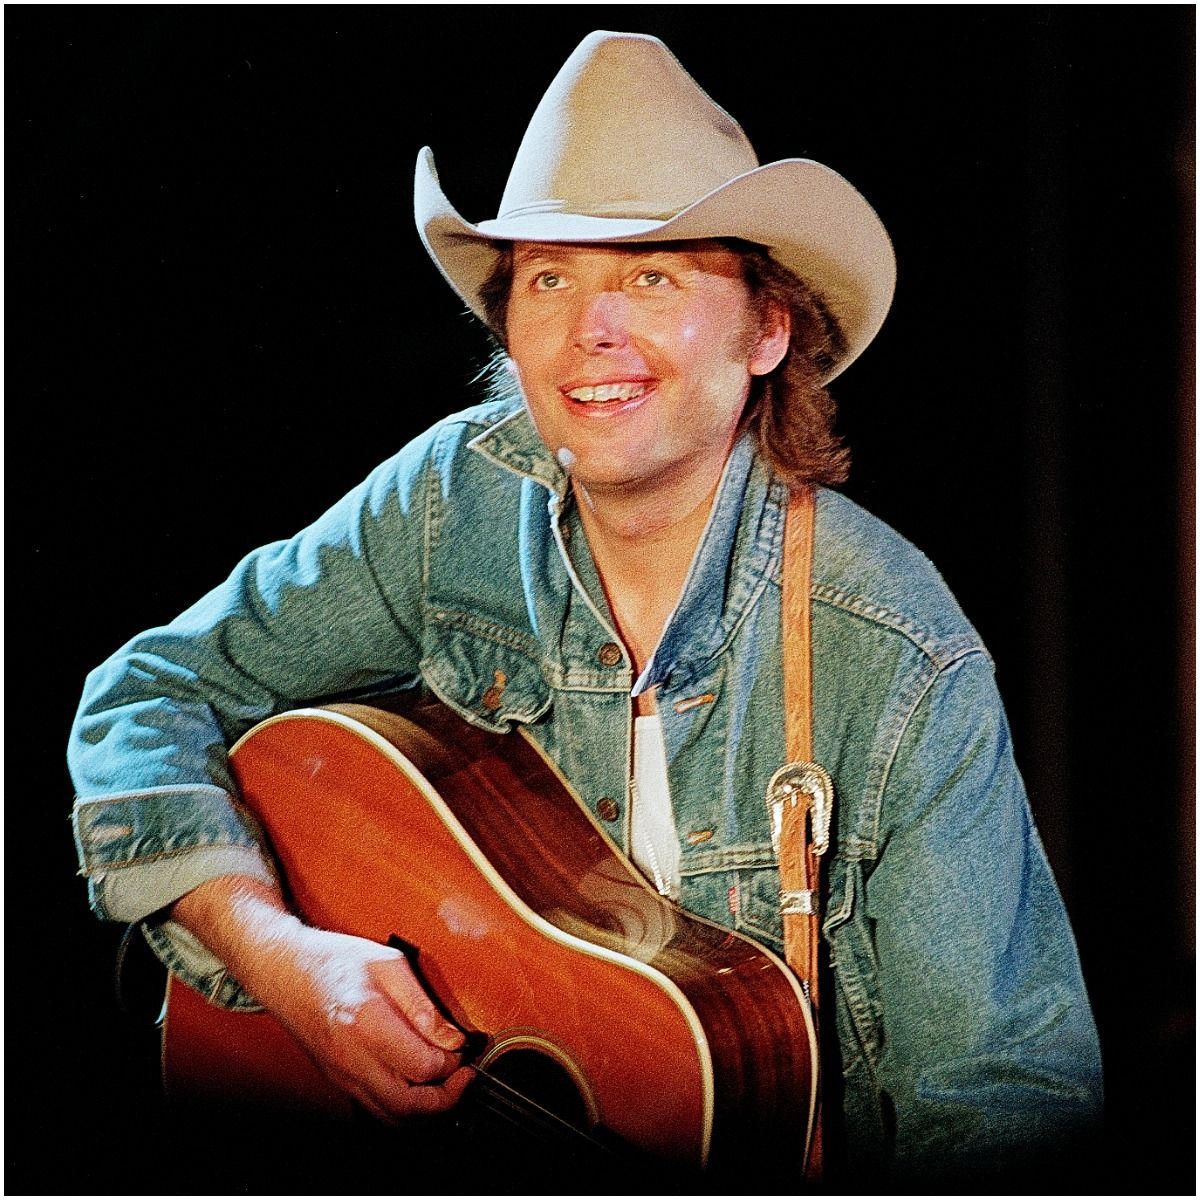 what is the net worth of Dwight Yoakam